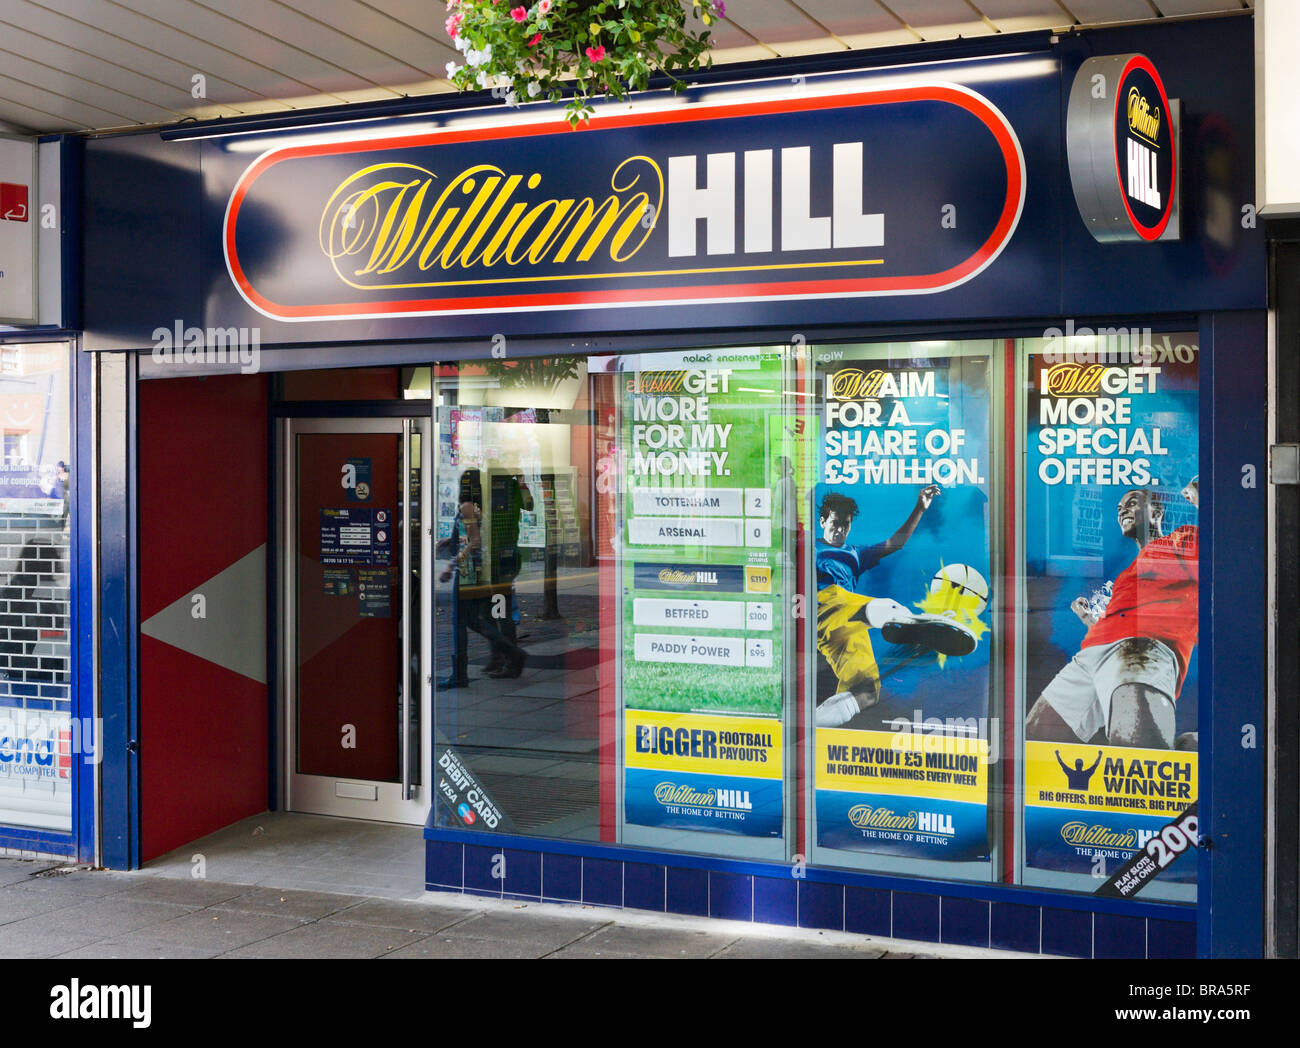 William Hill betting shop in Huddersfield town centre, West Yorkshire, England, UK - Stock Image